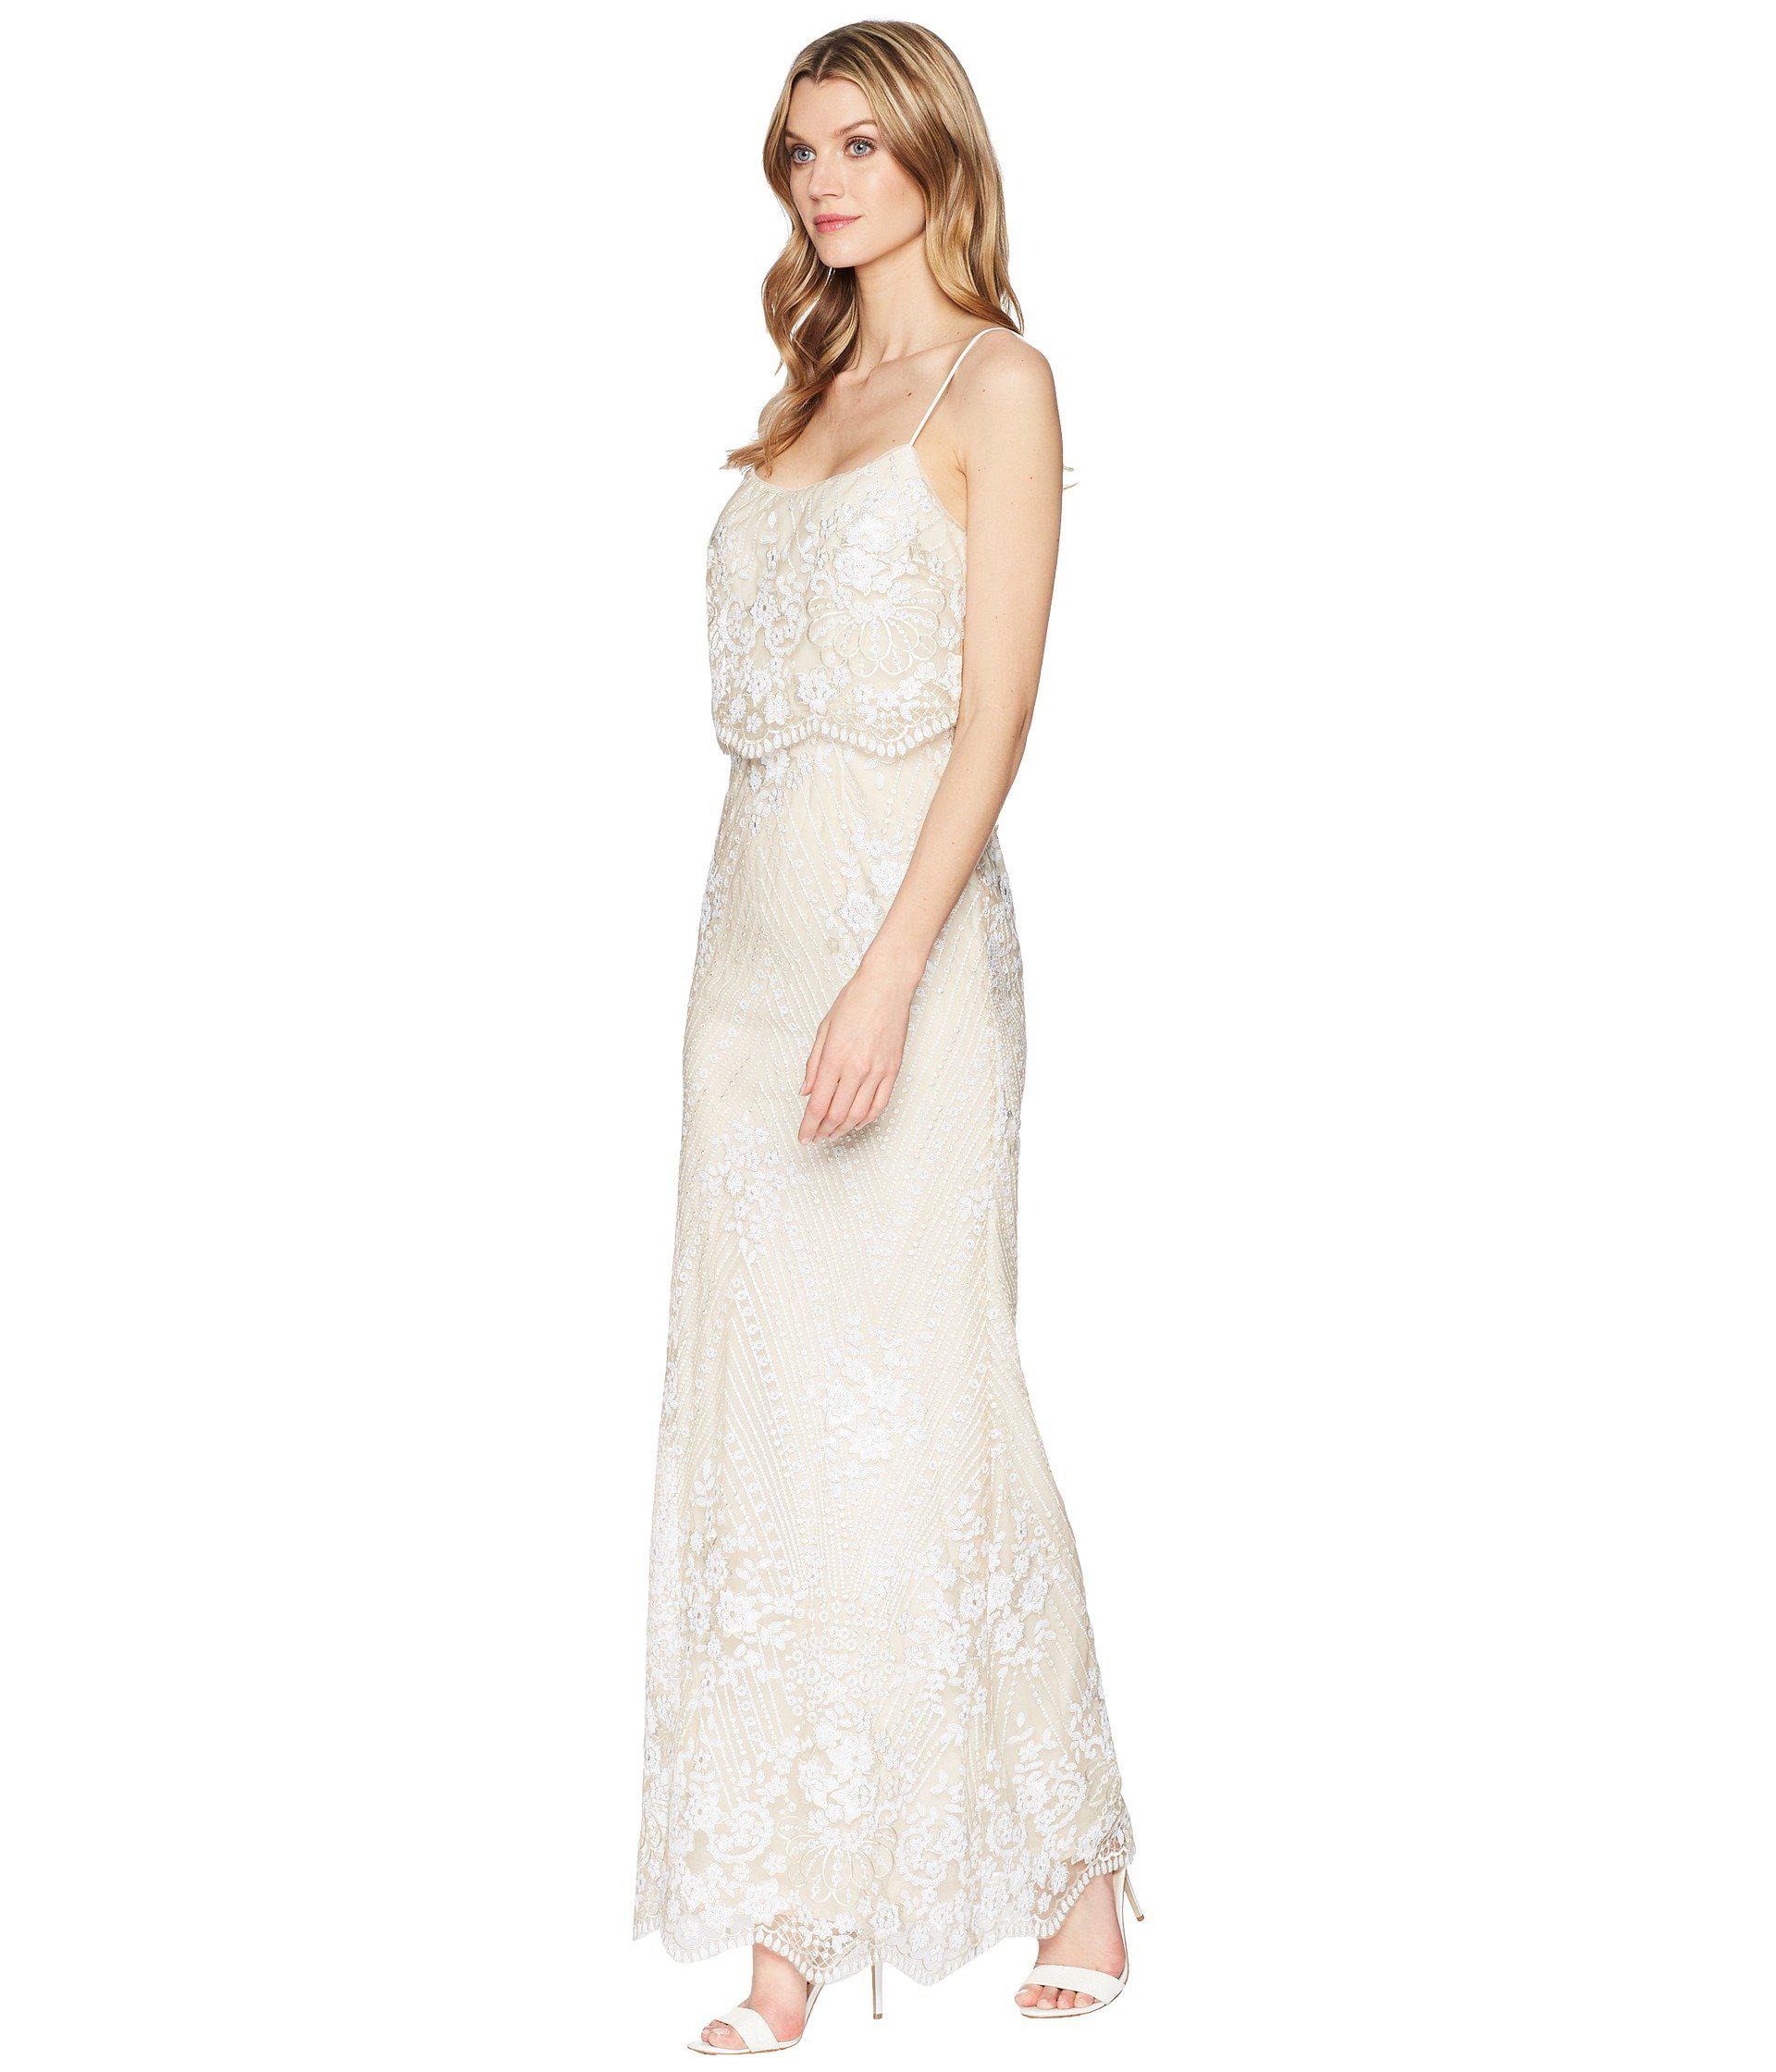 a6f45146074 Adrianna Papell Sequin Popover Gown in White - Lyst